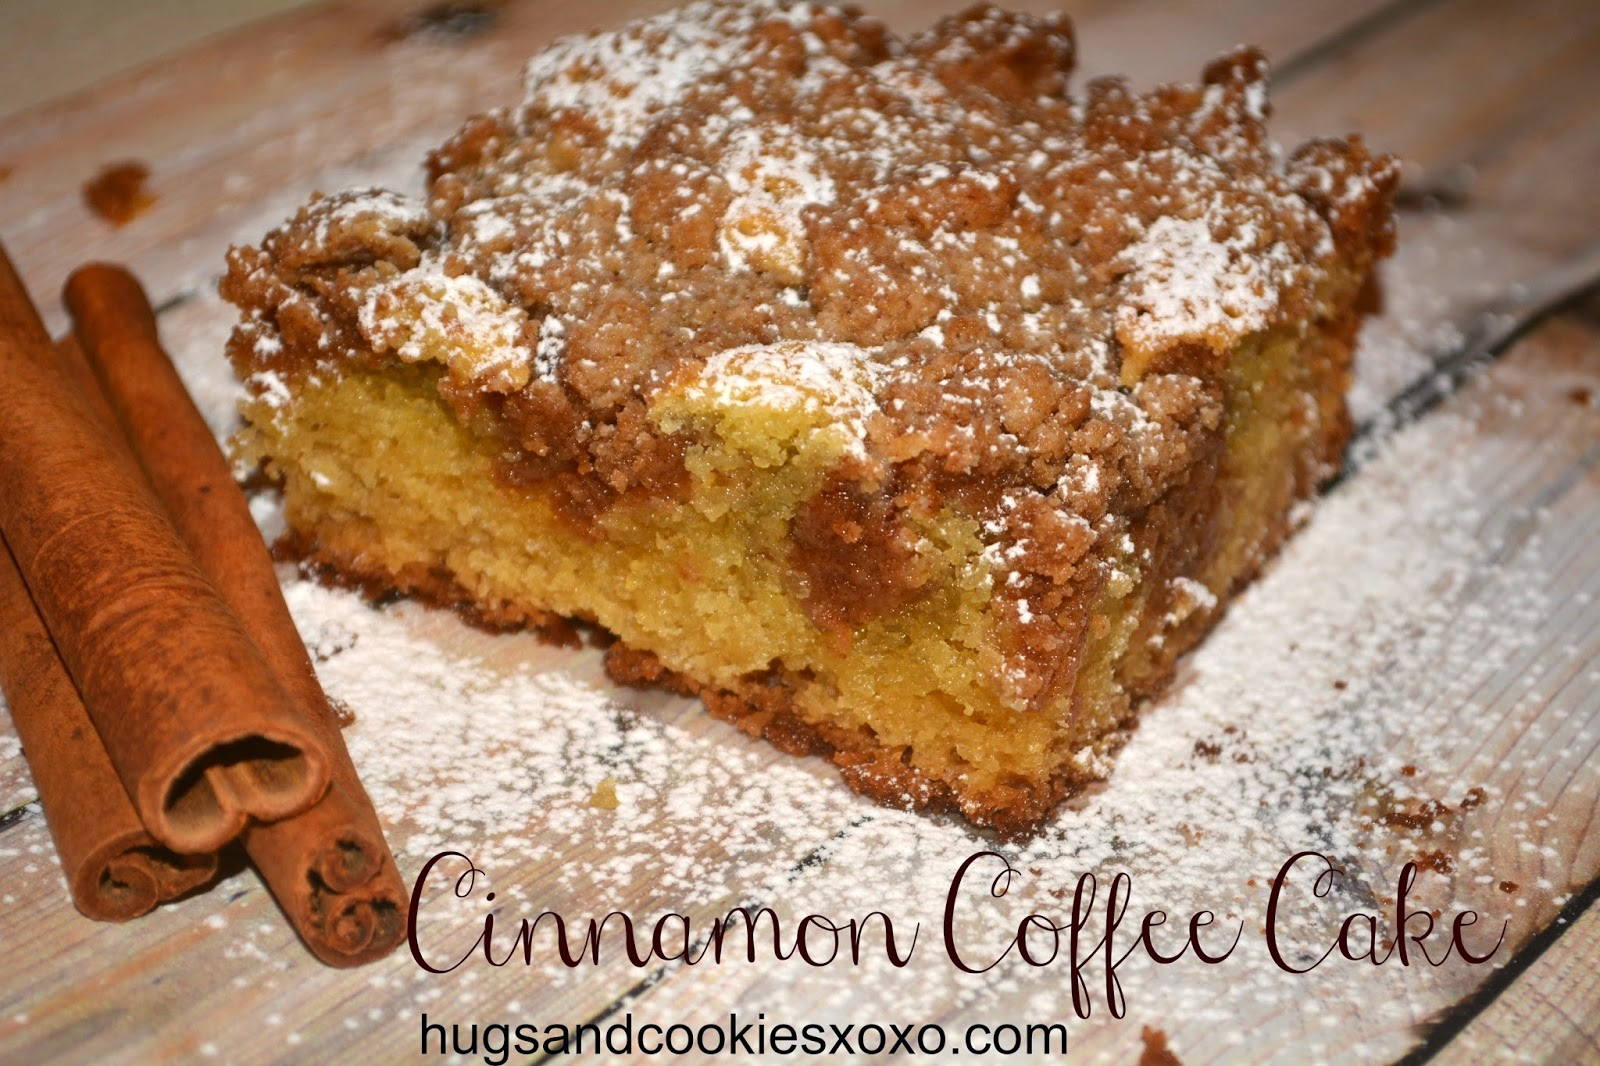 SOUR CREAM CINNAMON COFFEE CAKE - Hugs and Cookies XOXO